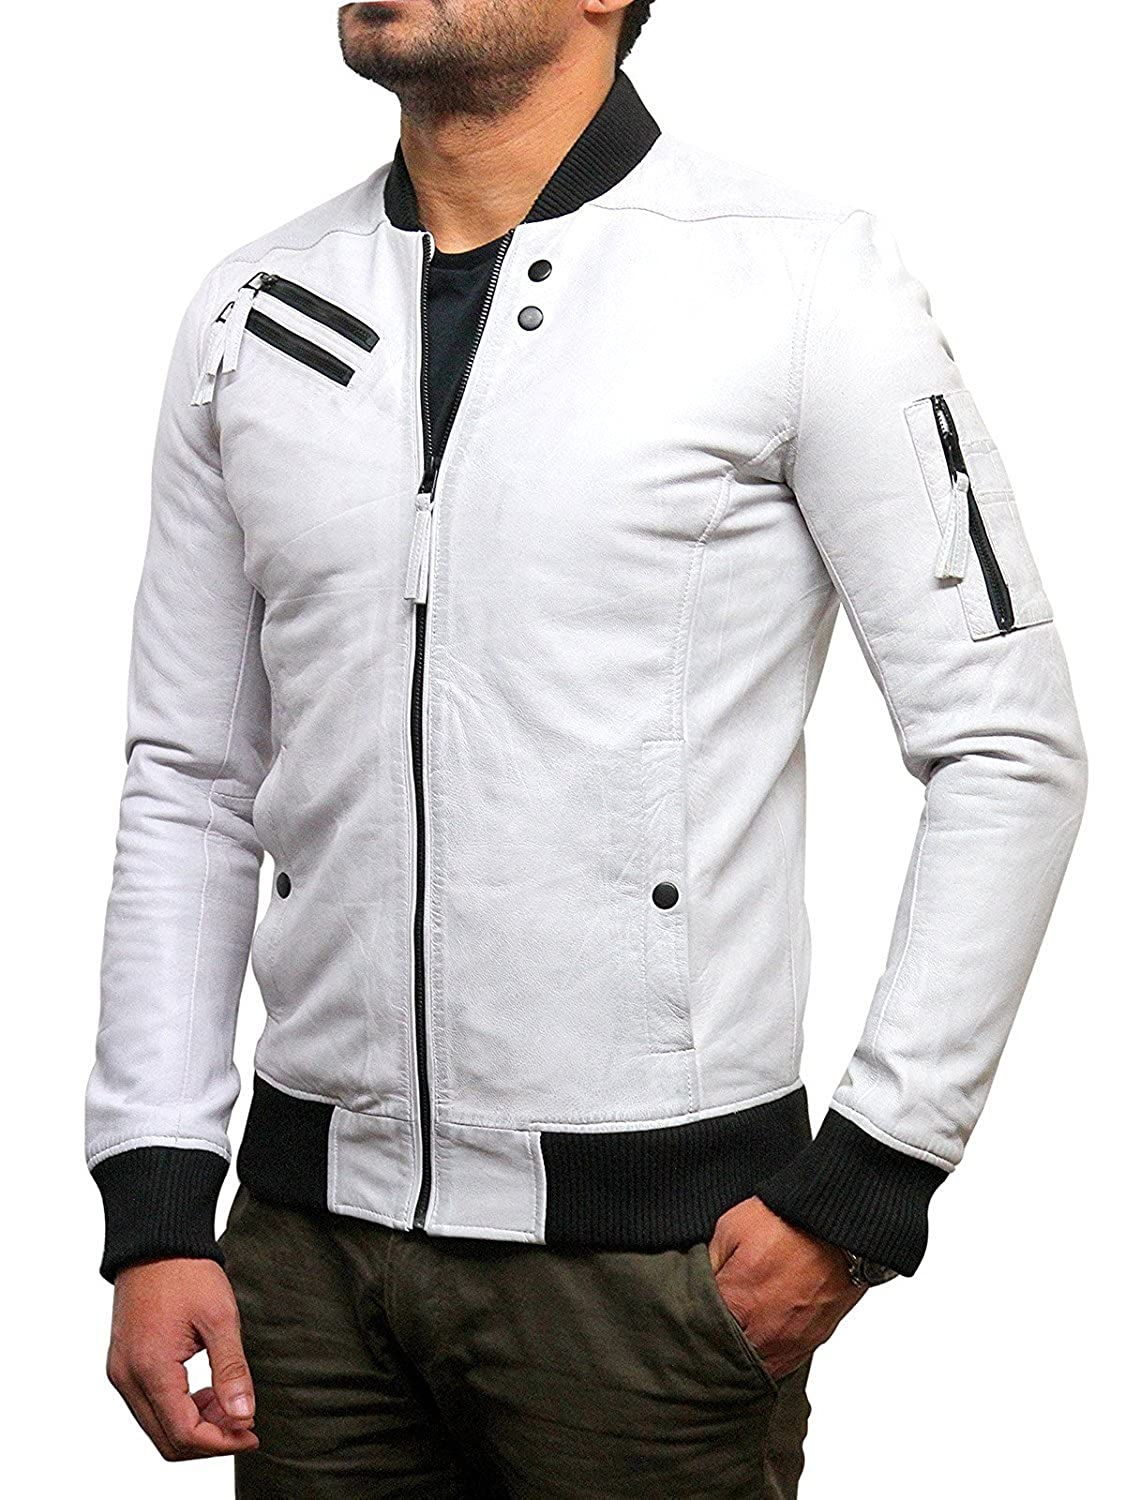 Brandslock Mens Genuine Leather Bomber Jacket Varisty Waxed Sheepskin at Amazon Mens Clothing store: